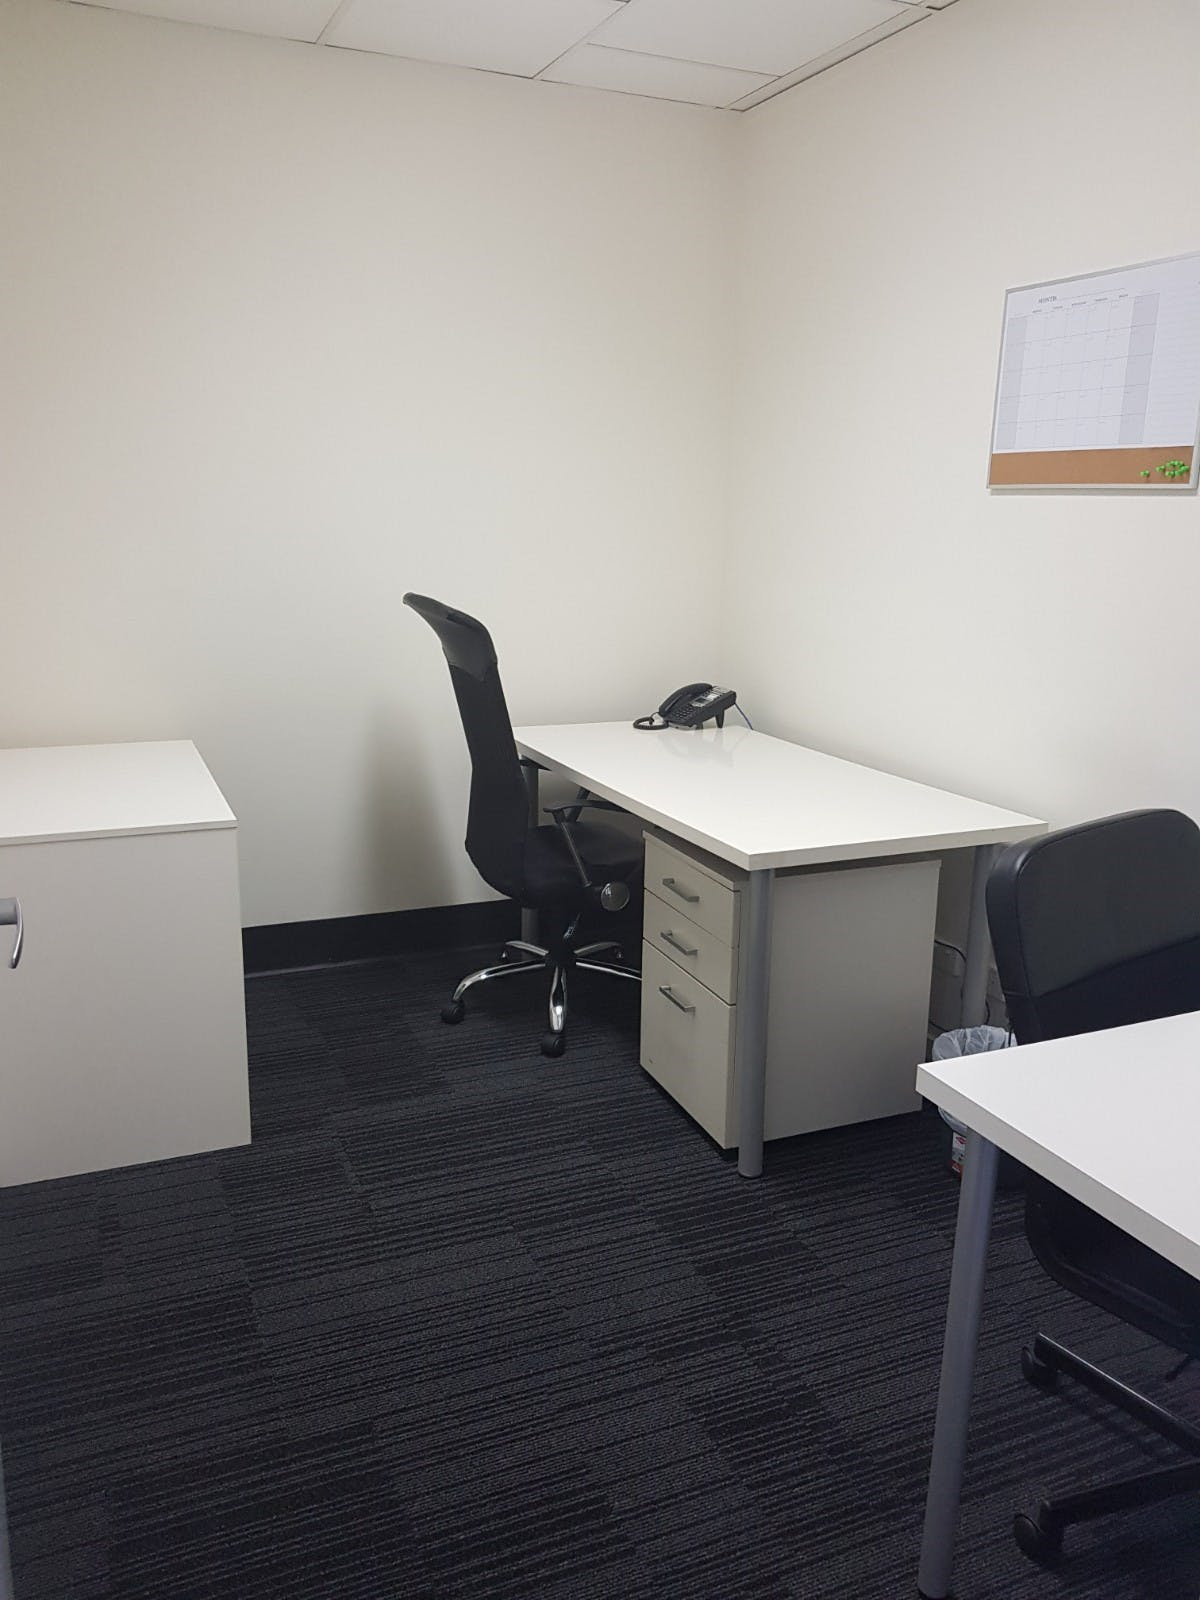 Serviced office at Bluedog Business Centre, image 1